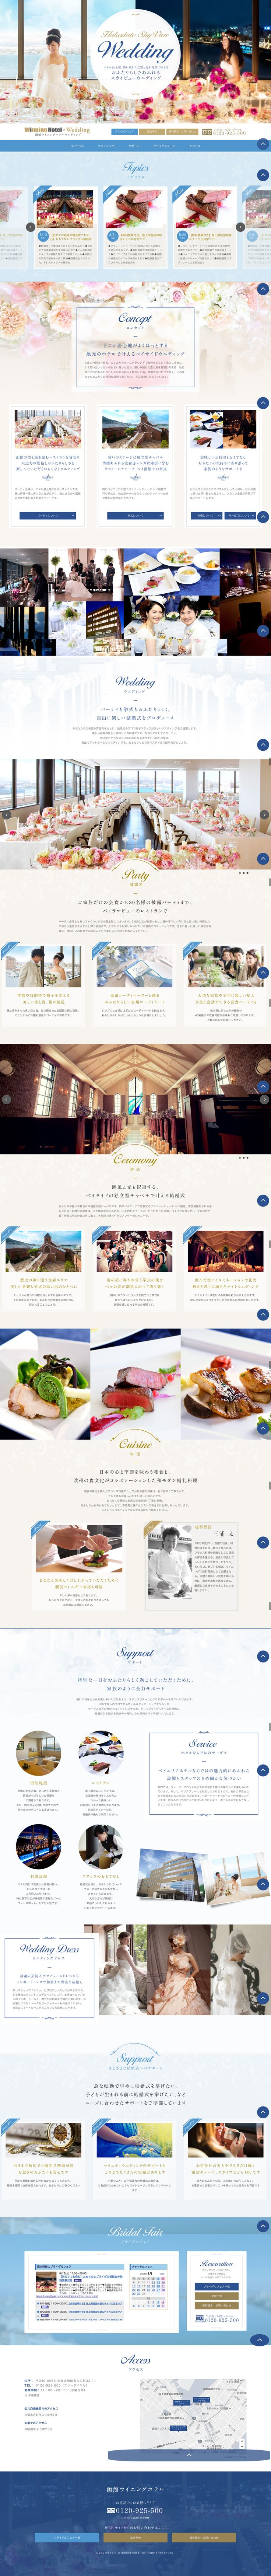 HAKODATE WINNING HOTEL WEDDING